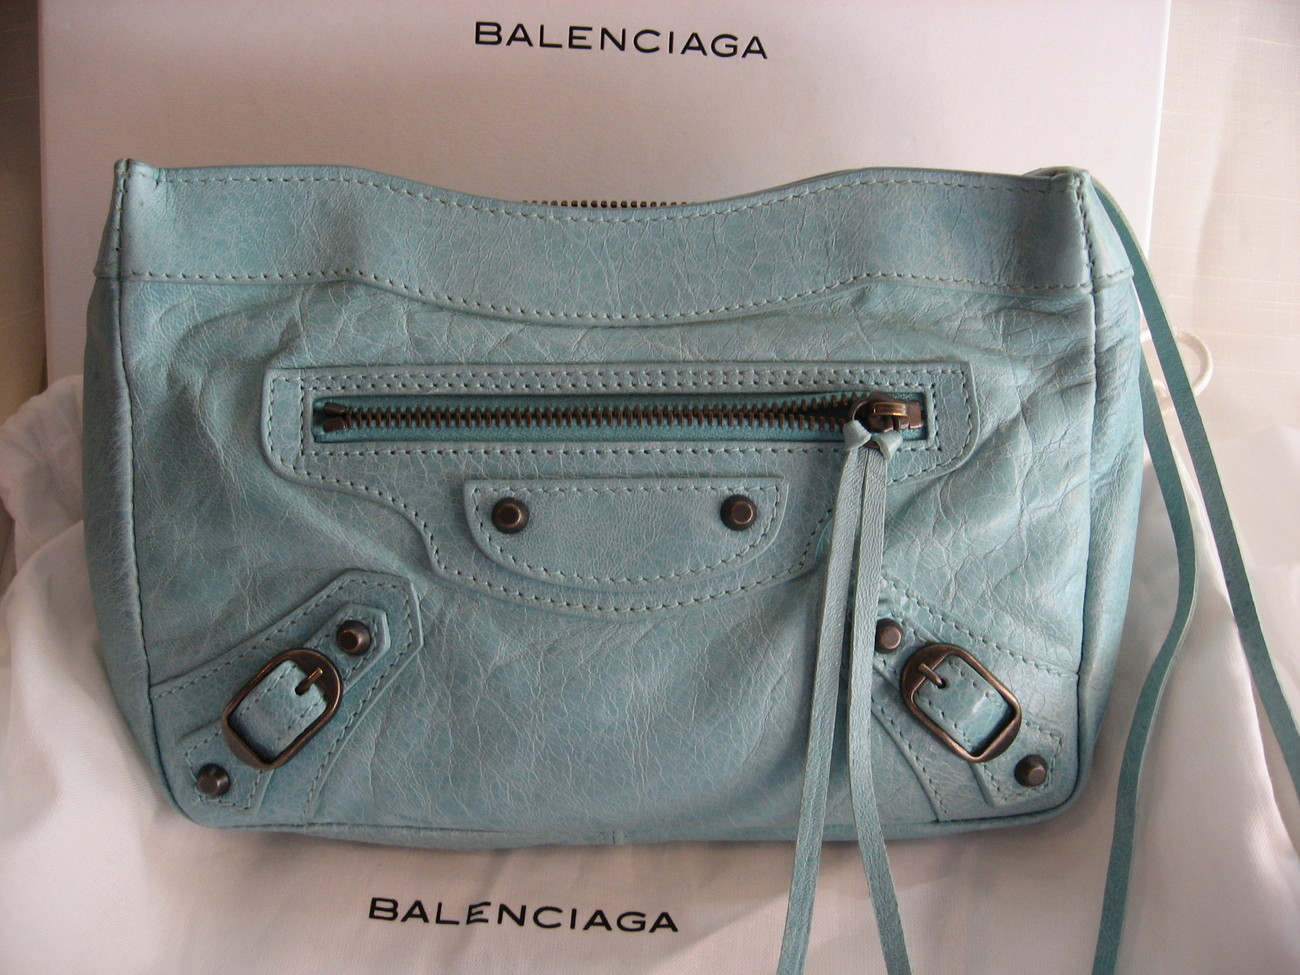 Primary image for Balenciaga - 2009 S/S Maldives Makeup Clutch Make Up